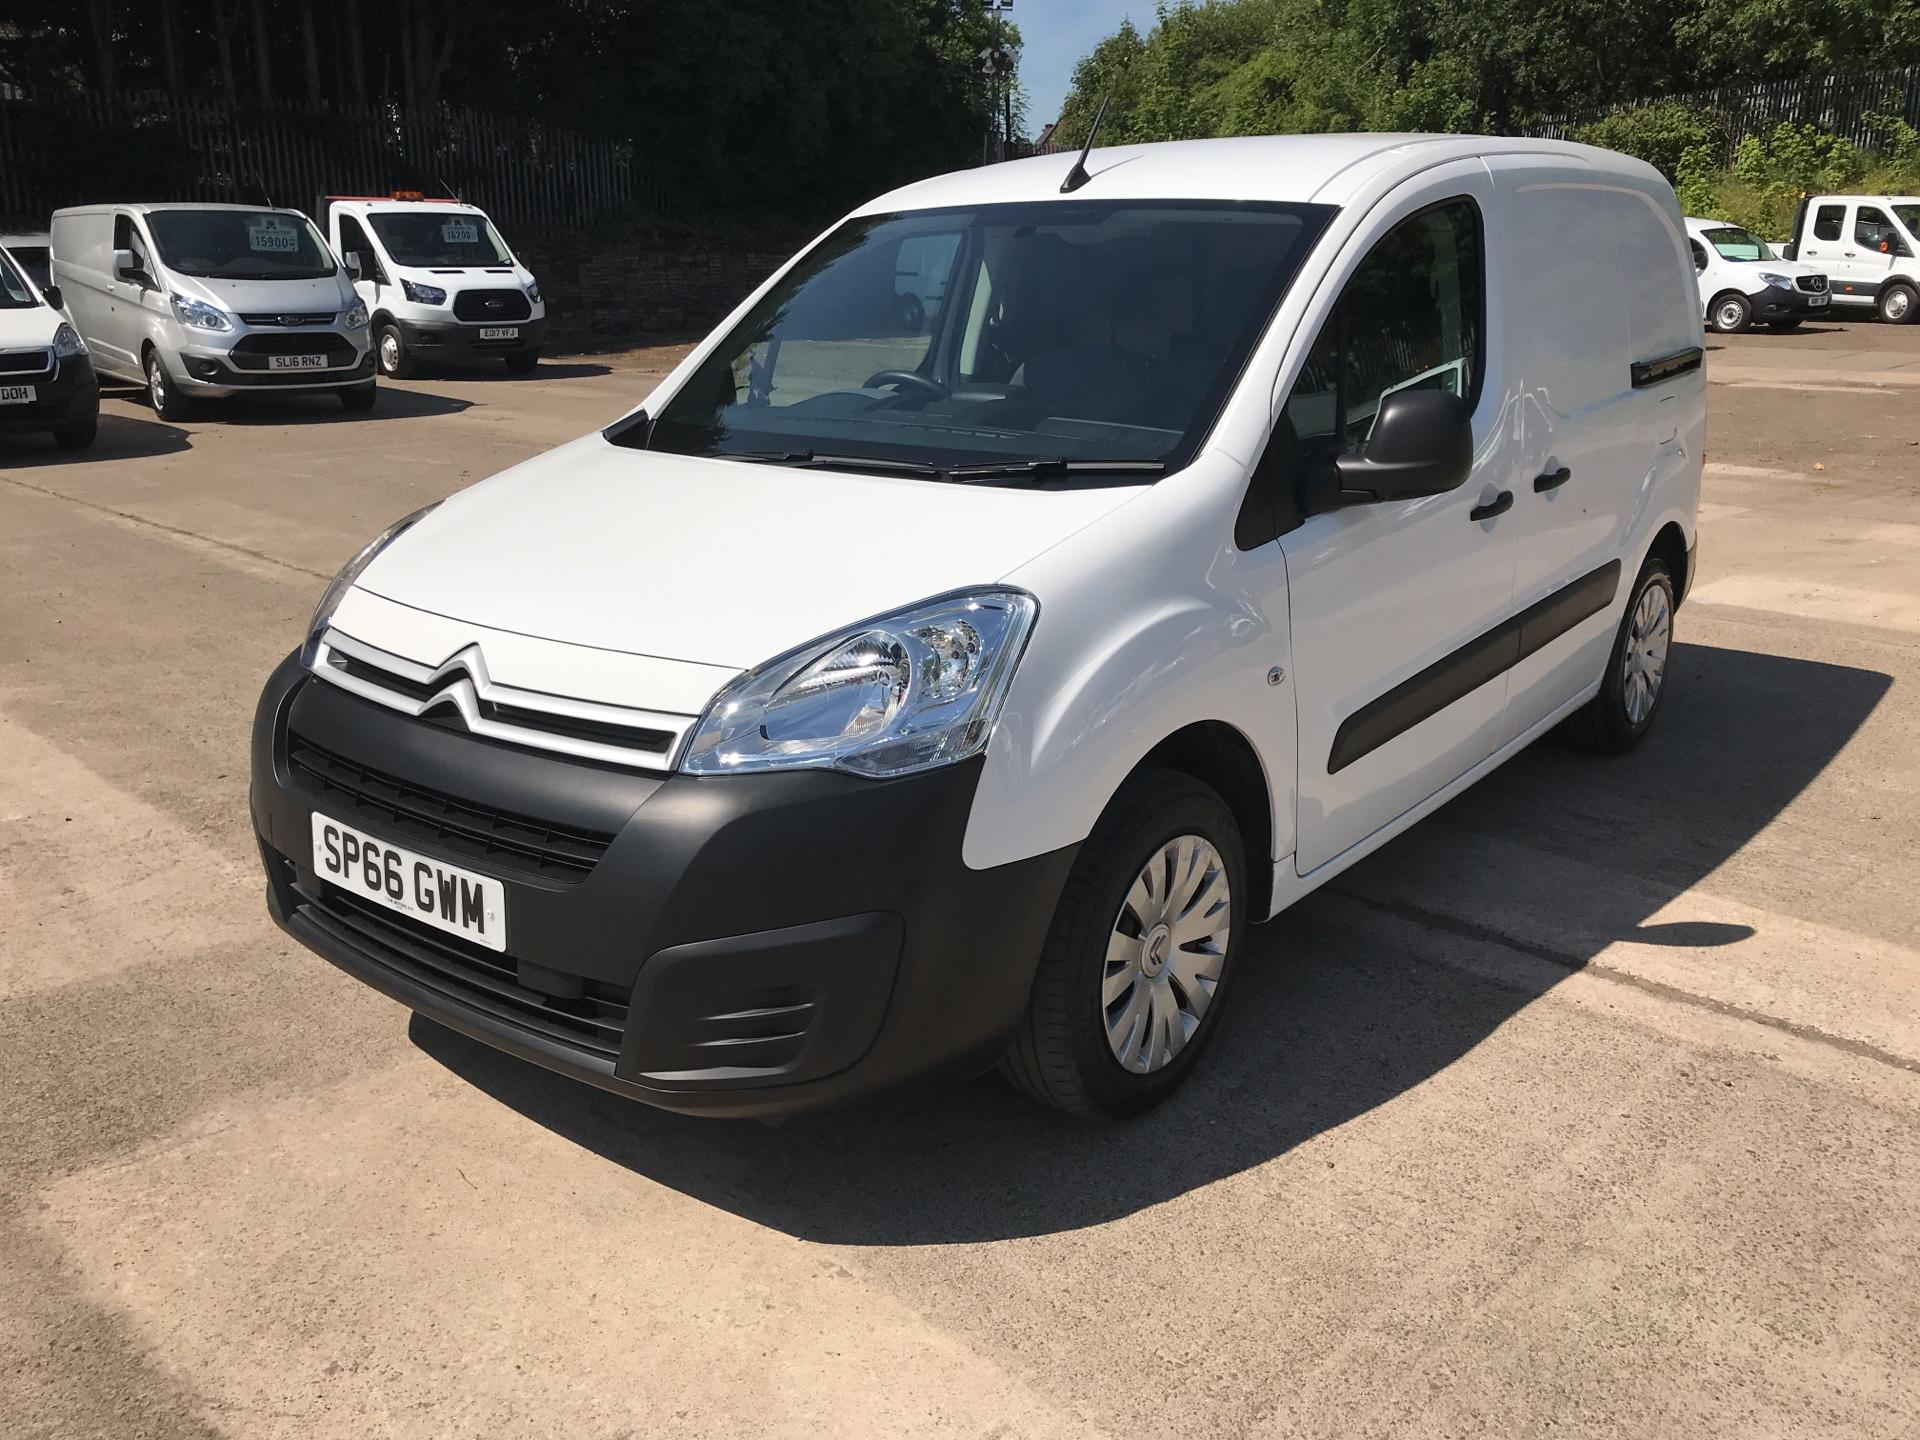 2016 Citroen Berlingo L1 DIESEL 1.6 HDI 625KG ENTERPRISE 75PS EURO 4/5 (SP66GWM) Thumbnail 7